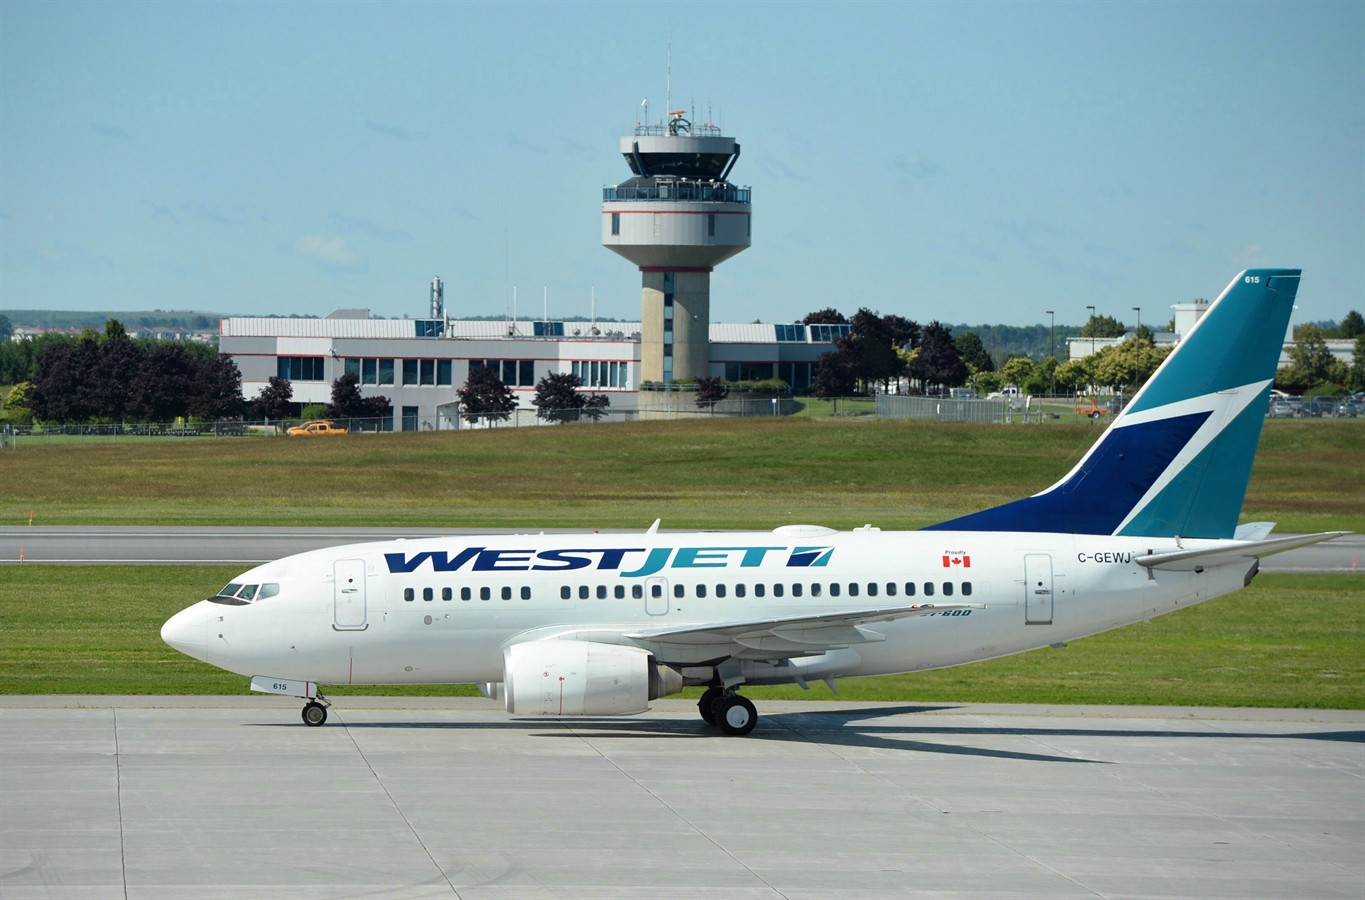 how important is the reservation system at airlines such as westjet and jetblue